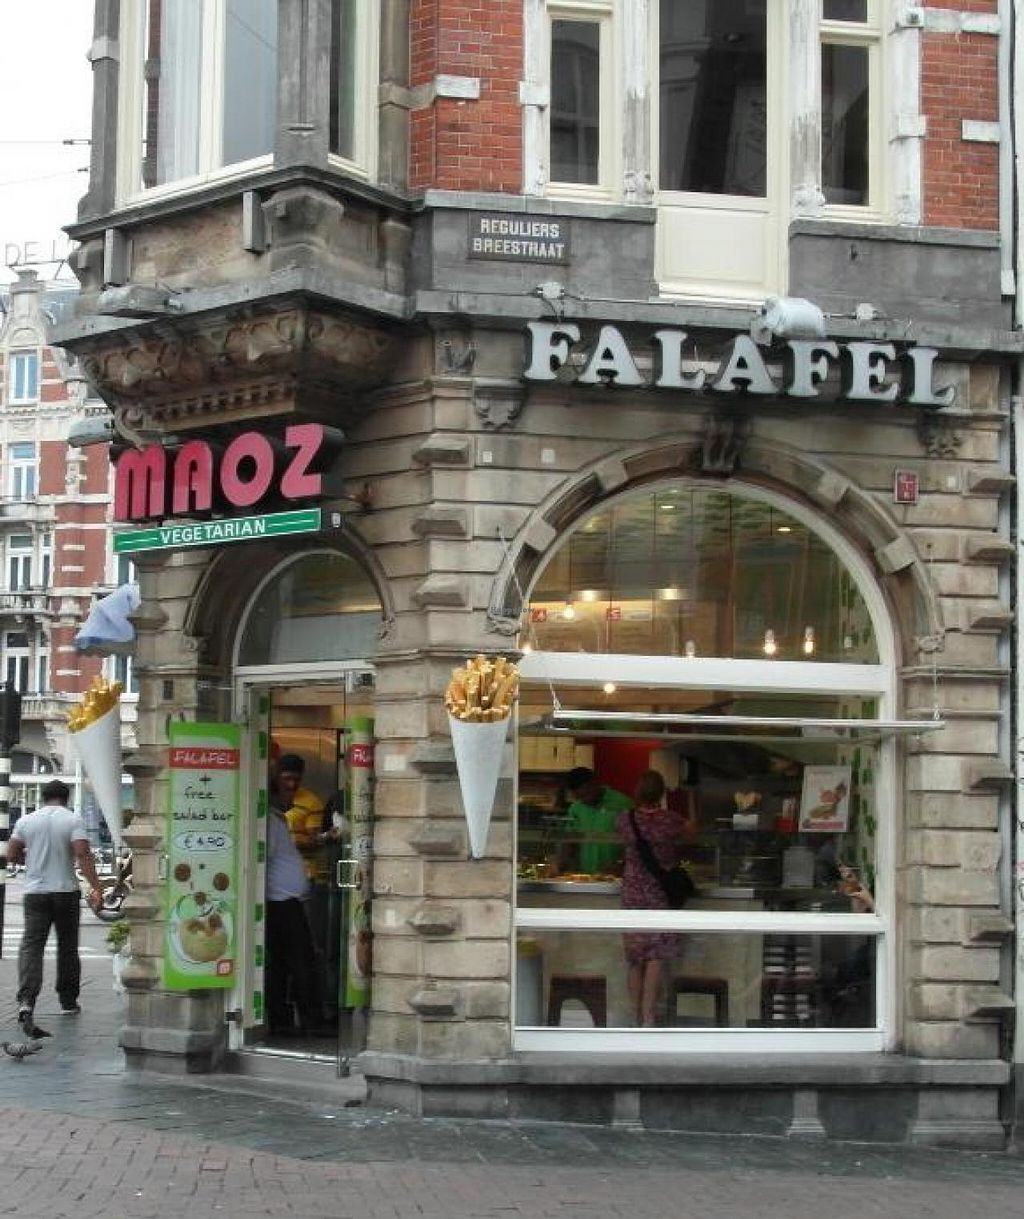 "Photo of Maoz Falafel - Muntplein  by <a href=""/members/profile/Pamina"">Pamina</a> <br/>Maoz Falafel @ Muntplein <br/> August 18, 2014  - <a href='/contact/abuse/image/3288/77398'>Report</a>"